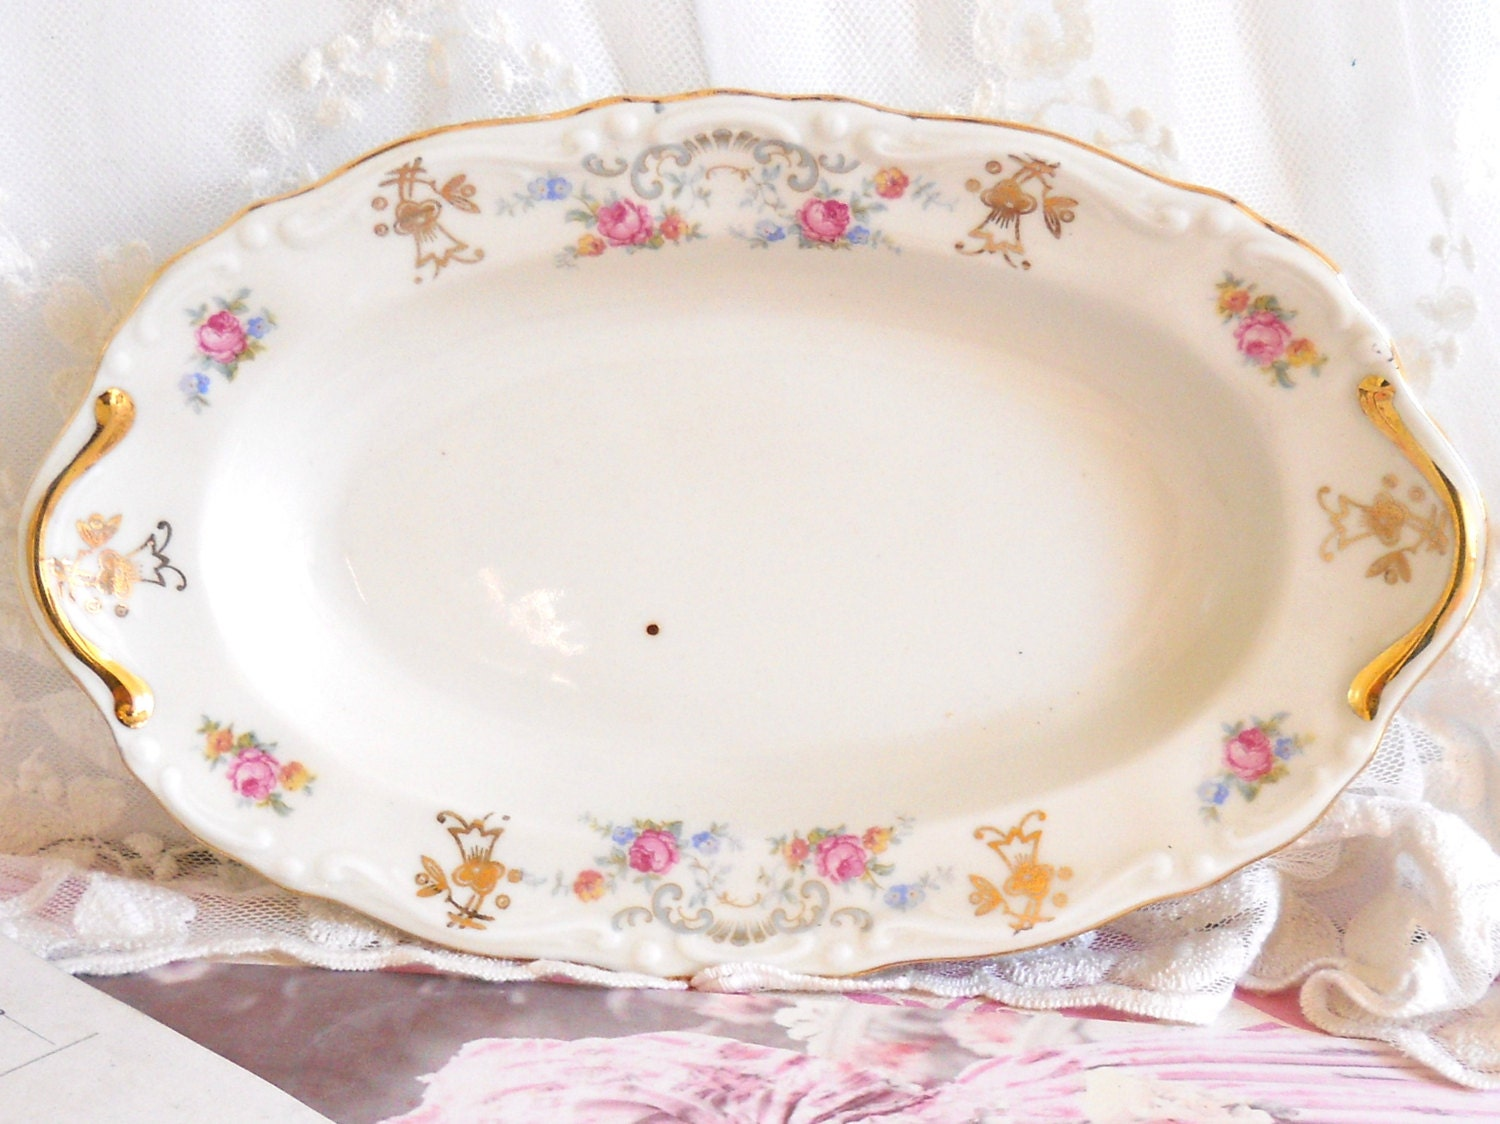 vintage oval serving dish german porcelain shabby chic multicolor flowers floral serving dish. Black Bedroom Furniture Sets. Home Design Ideas